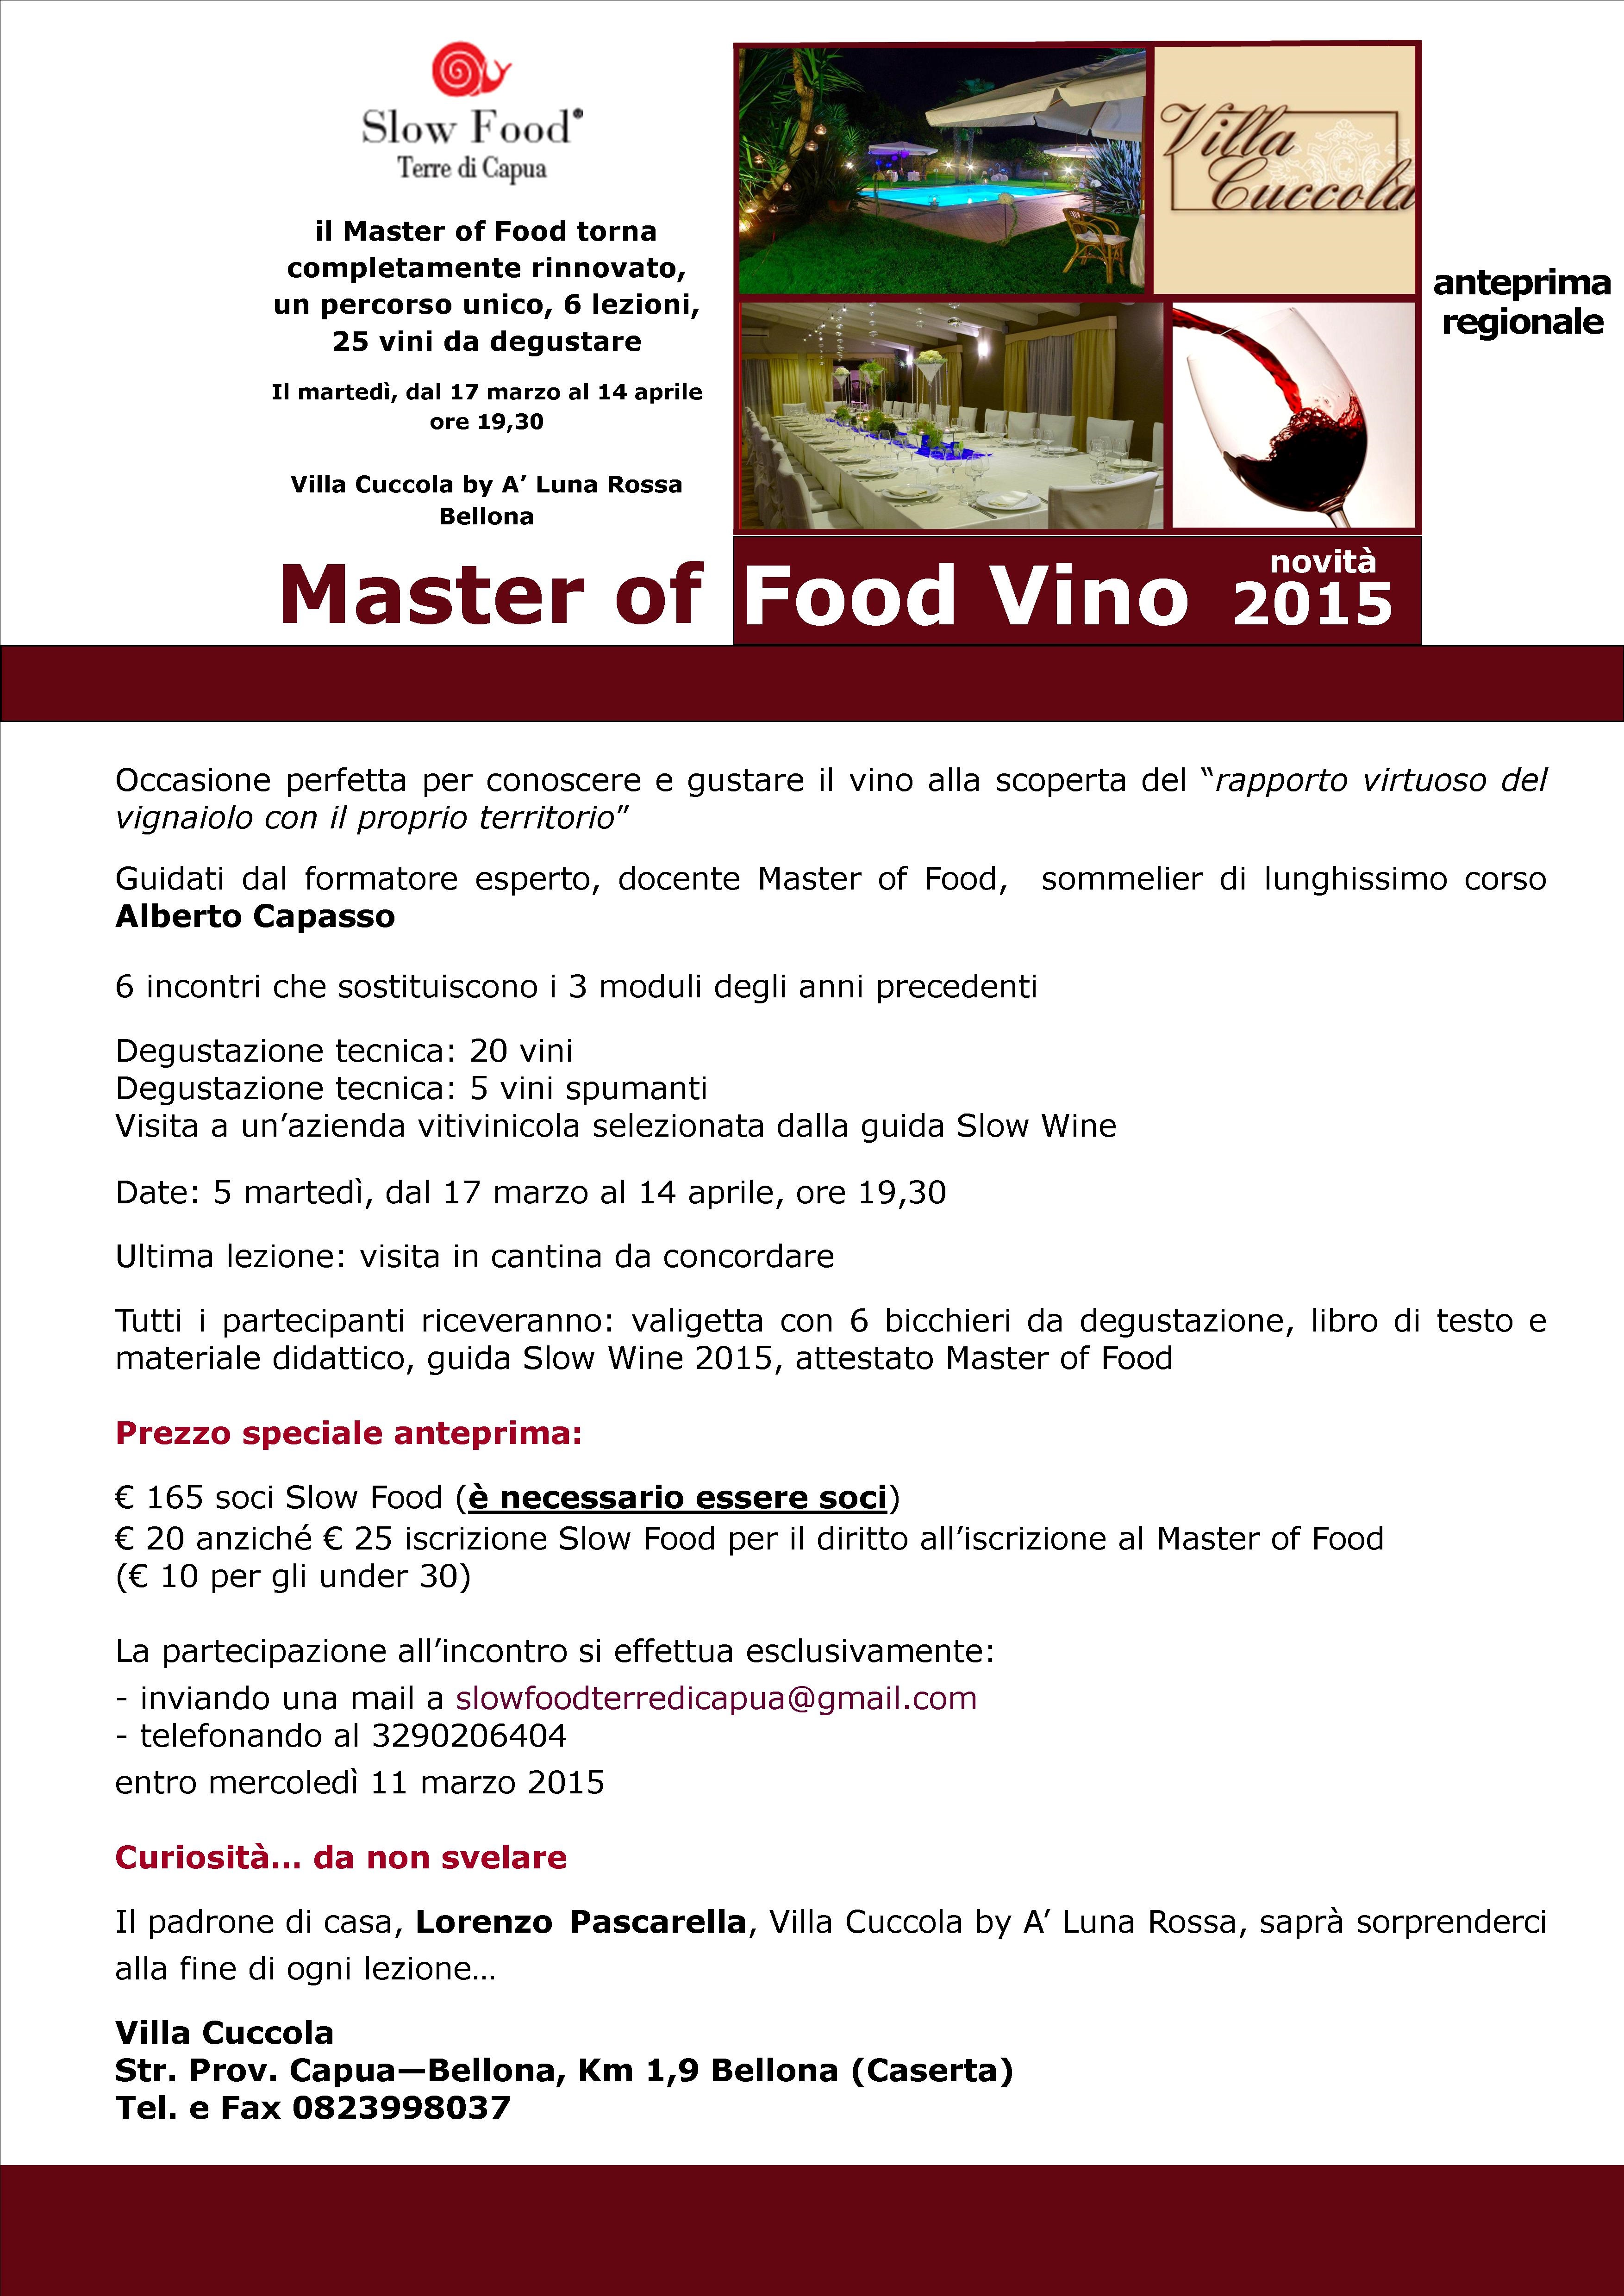 Master of Food primo in Campania